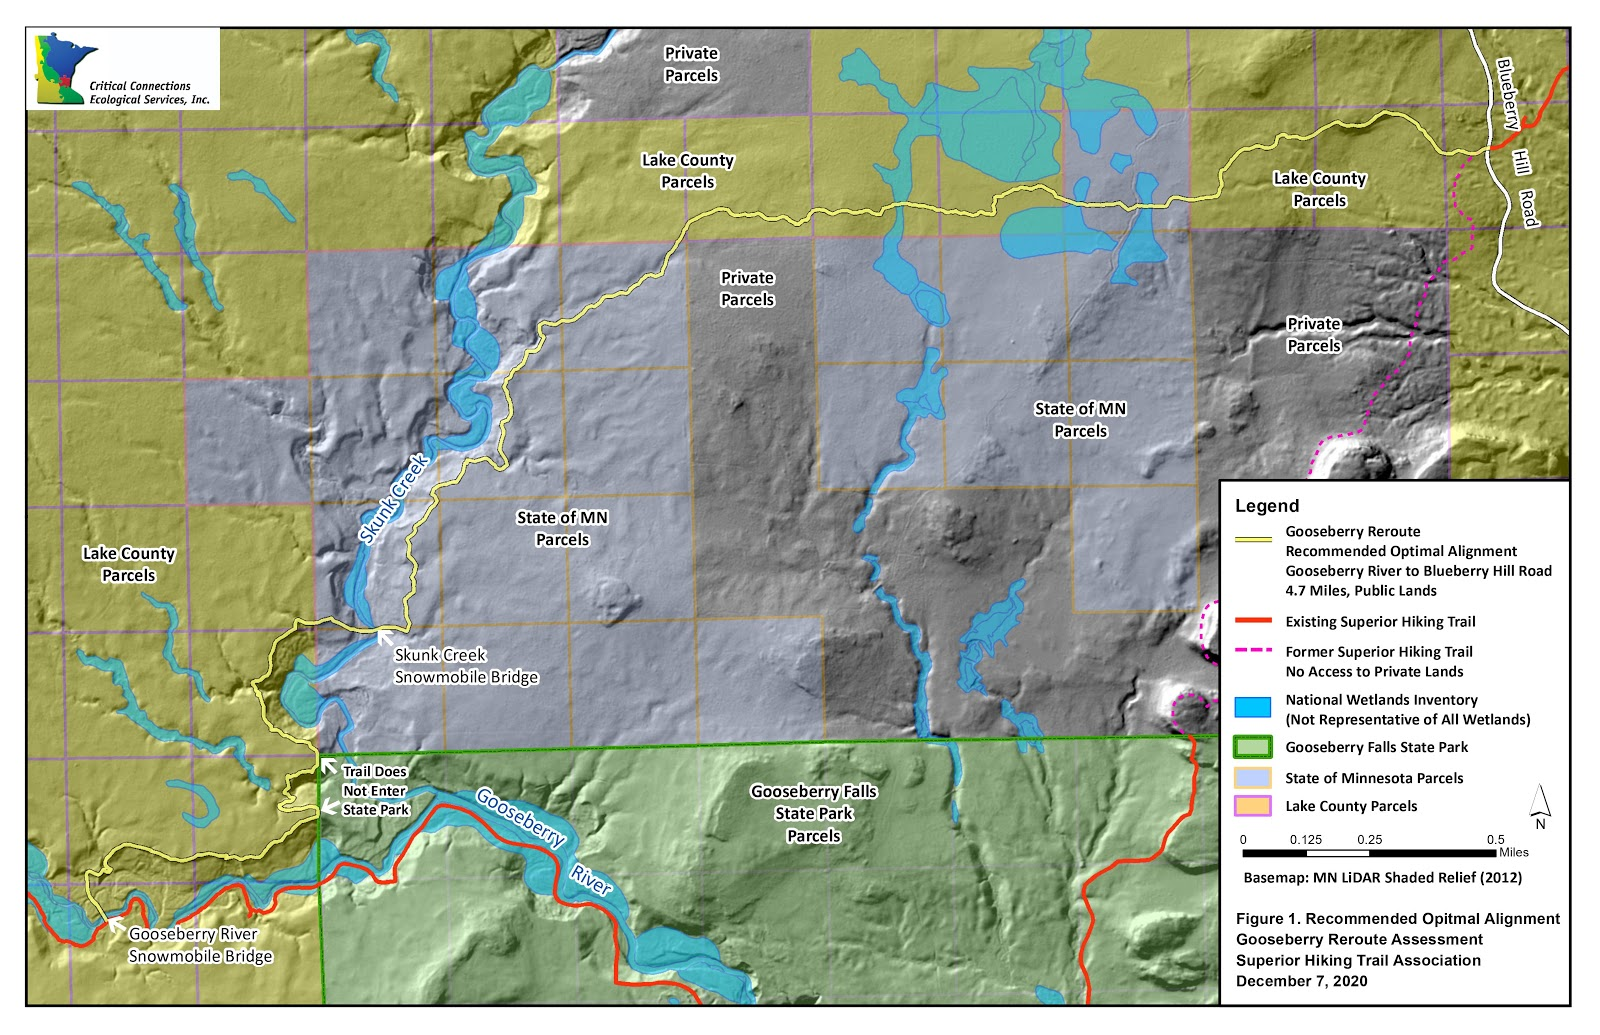 Image displays a topographic map with parcel data of the approved route for the Superior Hiking Trail between Gooseberry Falls State Park and Blueberry Hill Road. The map shows the route exclusively crosses public lands managed by the State of Minnesota and Lake County.